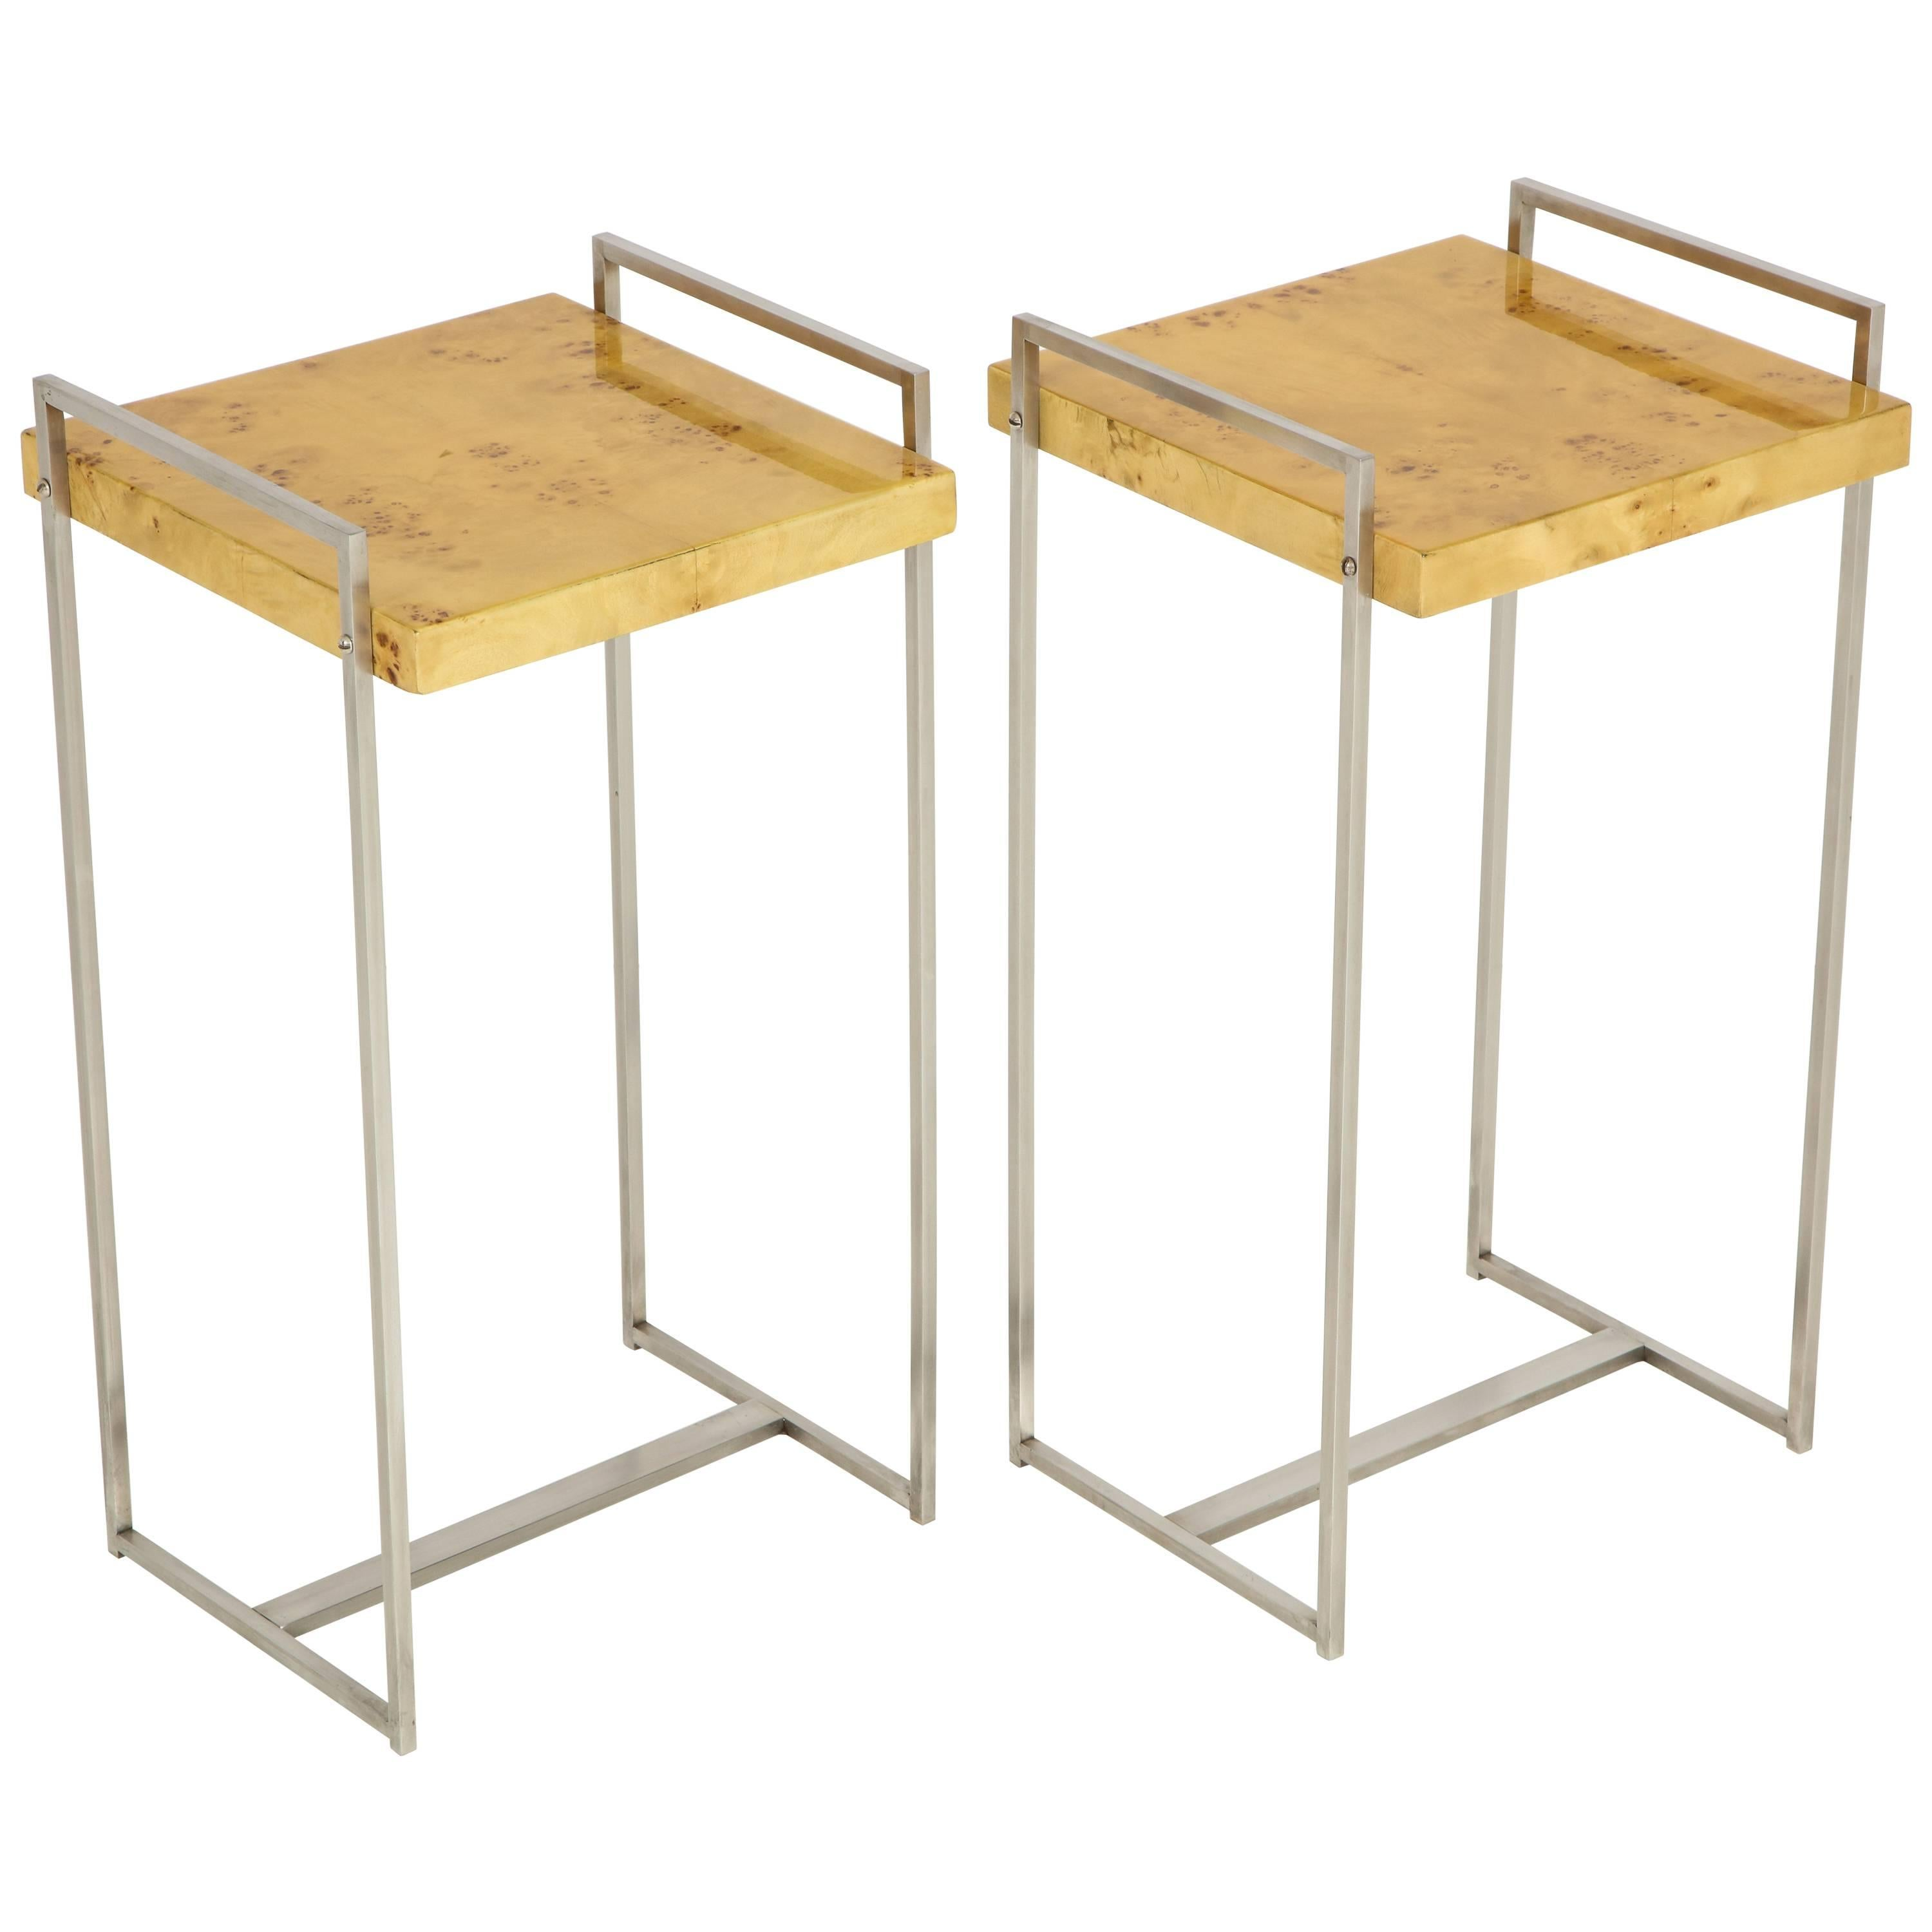 Pair Of Steel Side Tables Or End Tables With Birdseye Maple Tops